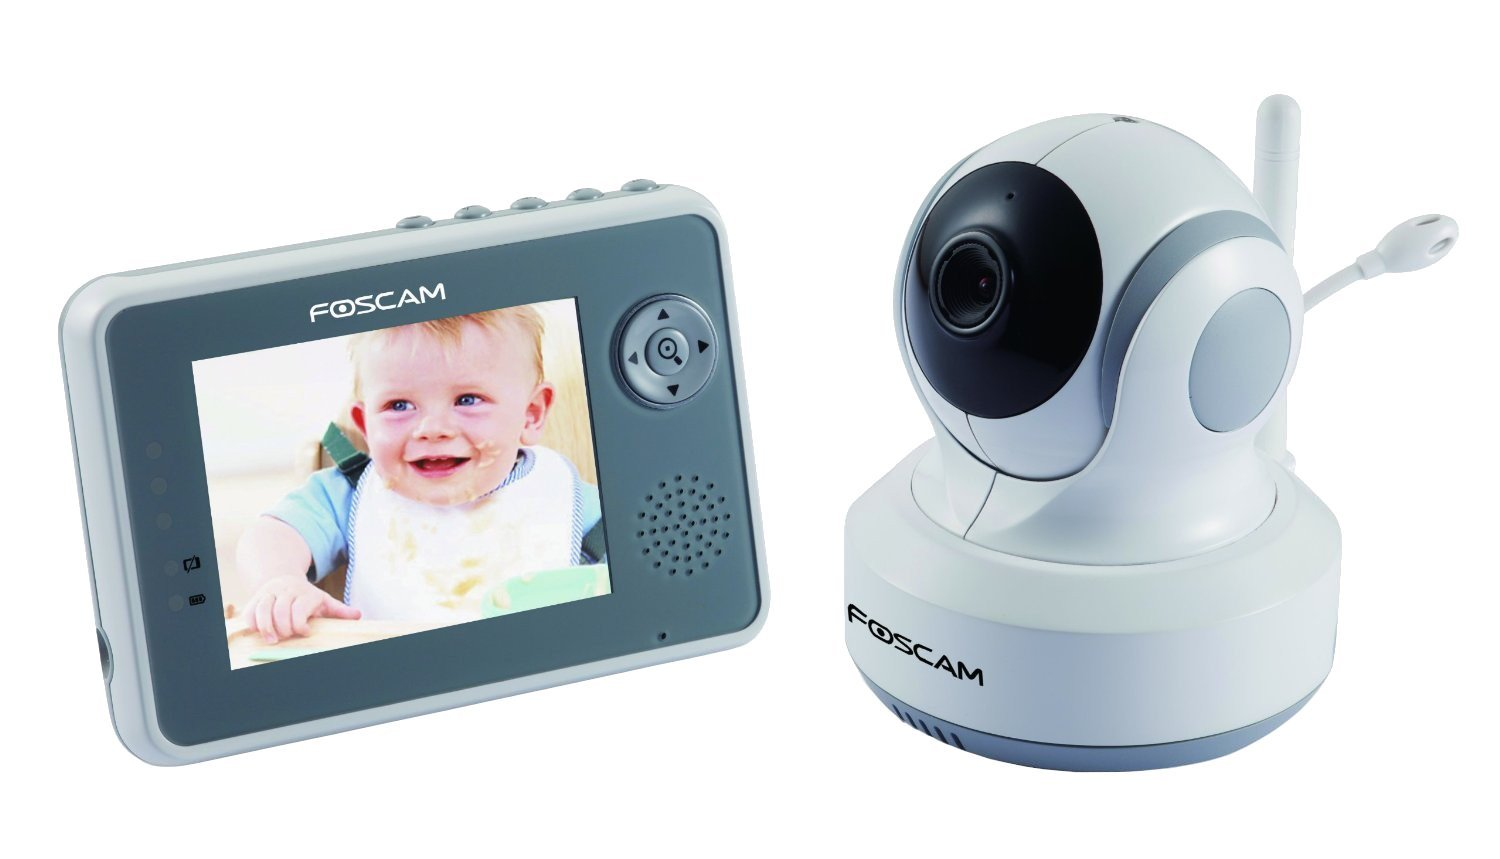 "Foscam FBM3501 Wireless Digital Video Baby Monitor - Pan/Tilt, Nightvision and Two-Way Audio with 3.5"" LCD"